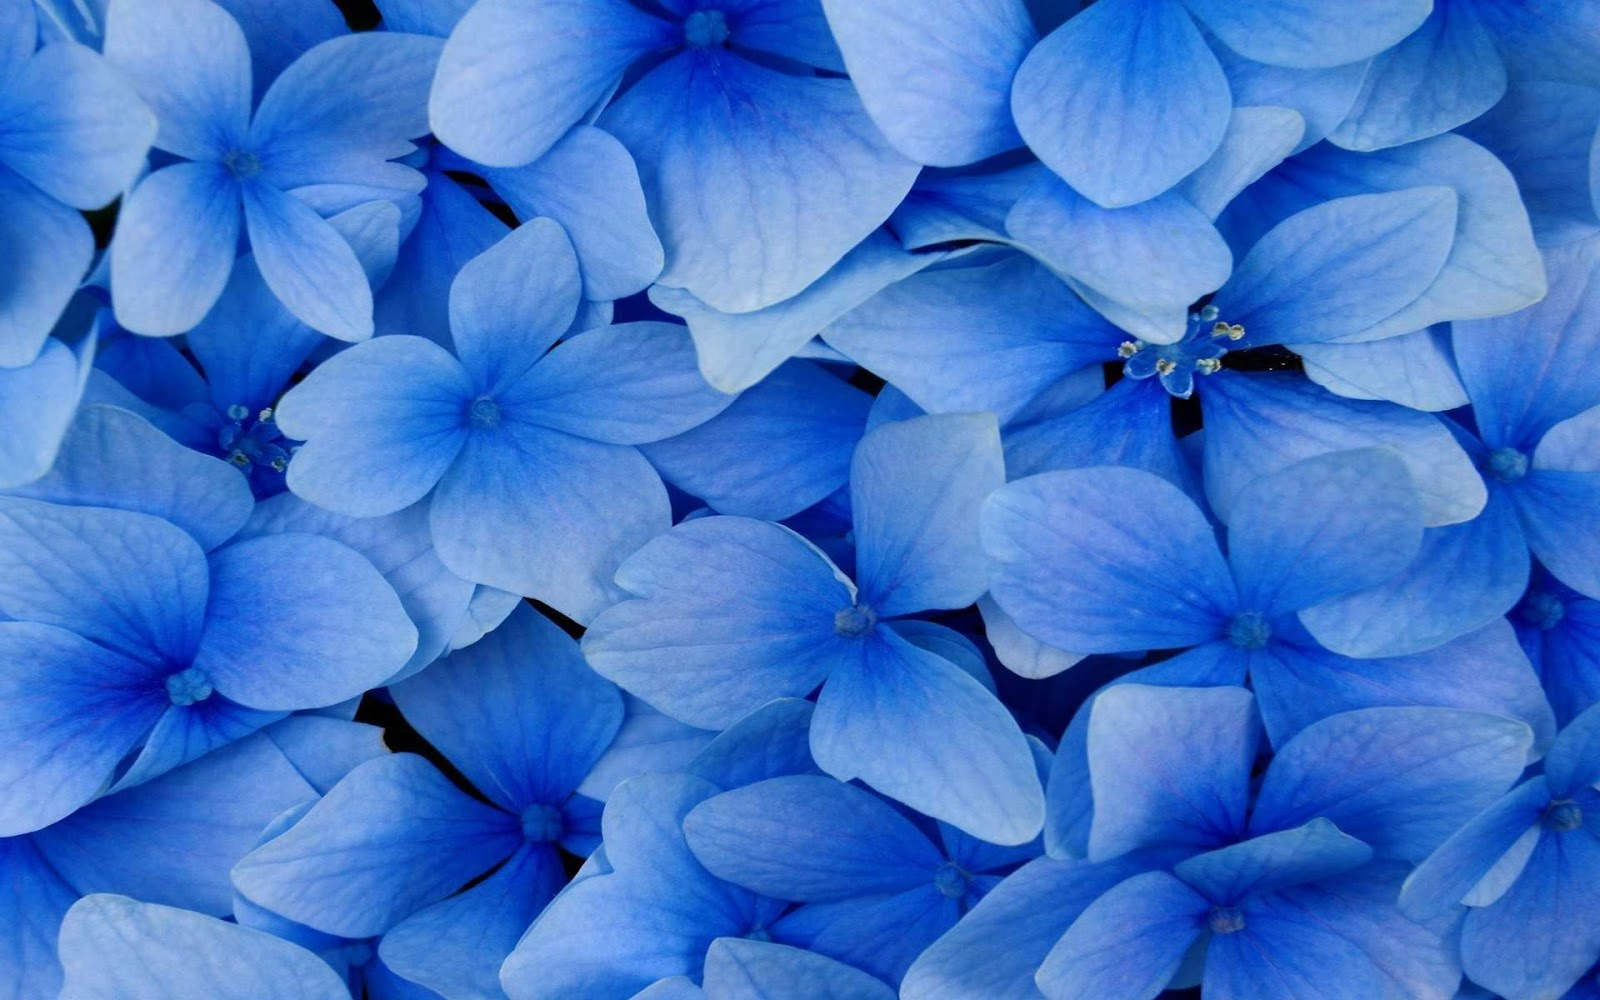 Blue And White Flower Wallpaper: Black And White Wallpapers: Close-up Blue Flowers Blue